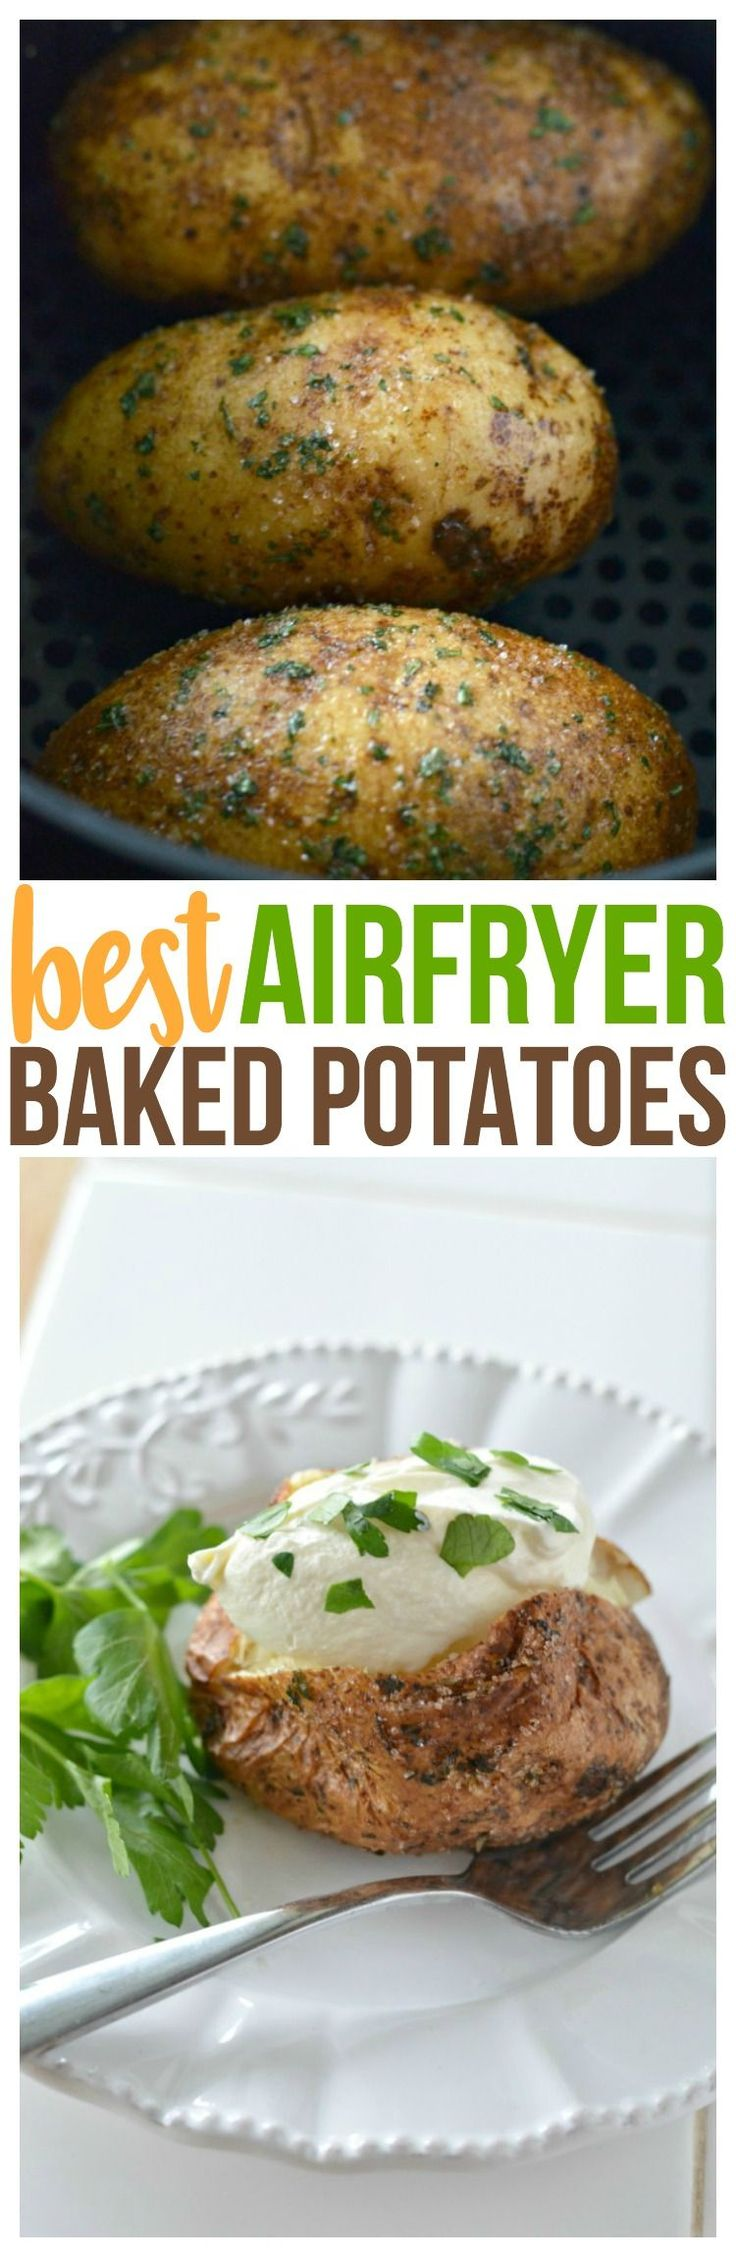 Air Fryer Baked Garlic Parsley Potatoes